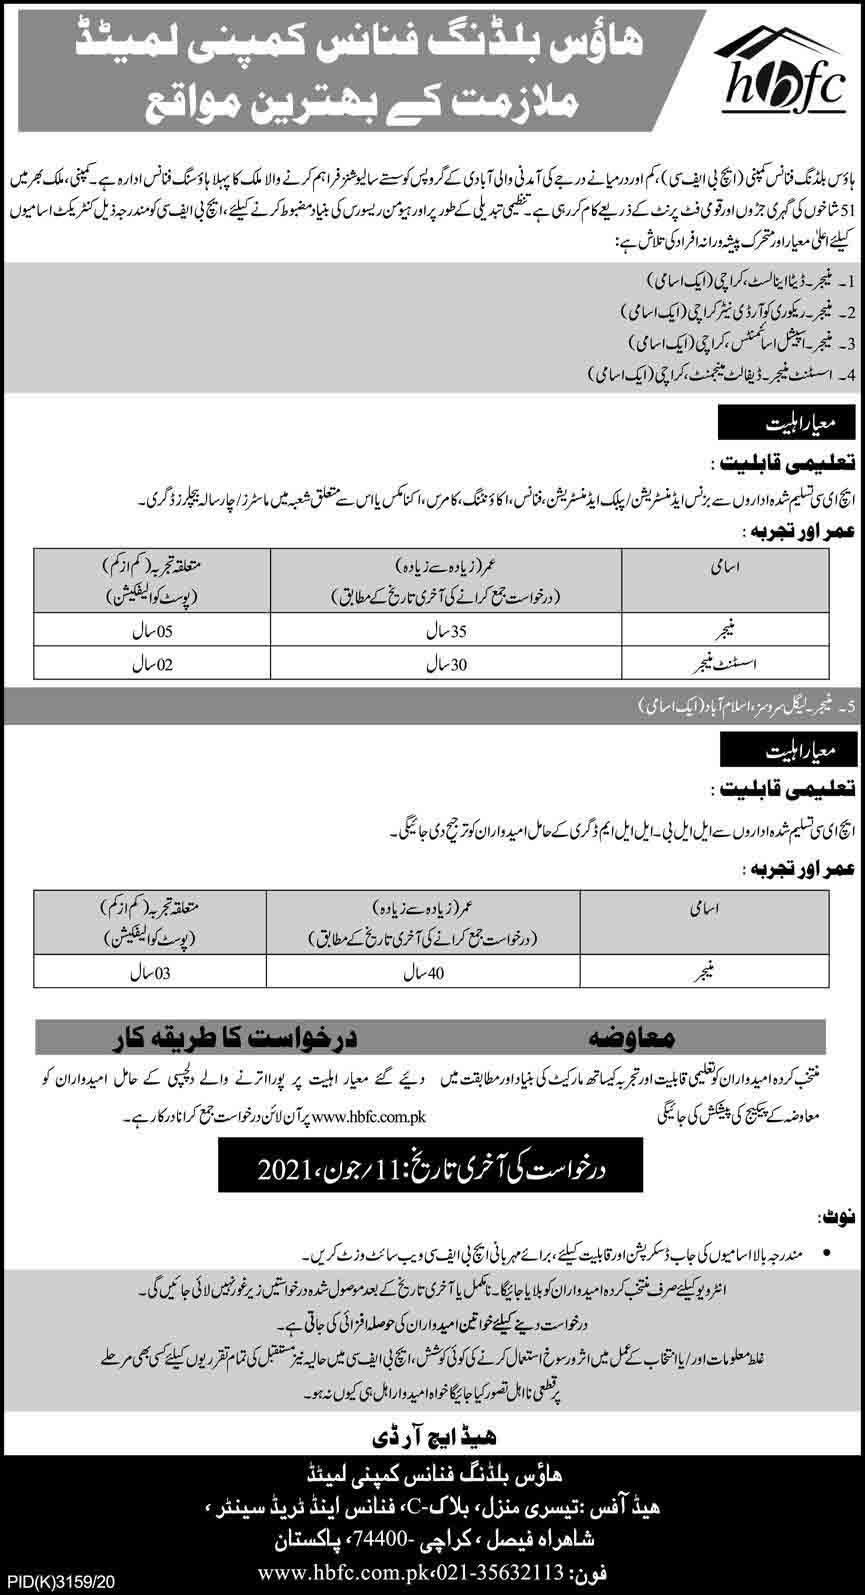 House Building Finance Company Limited (HBFC) Jobs May 2021